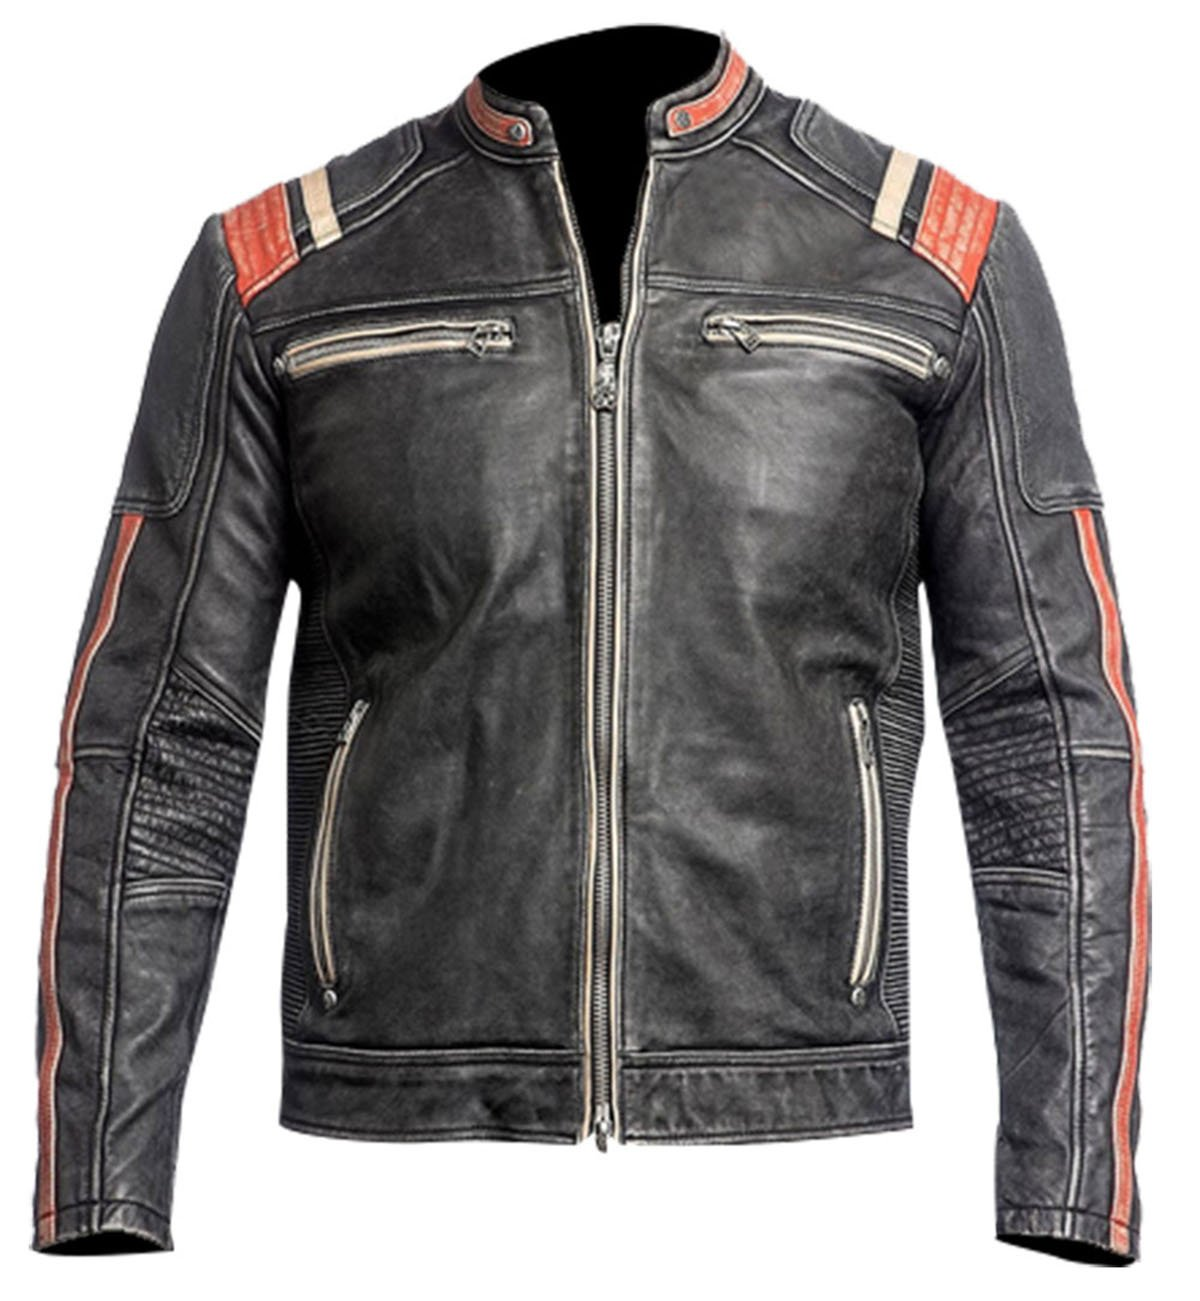 Retro Black Motorcycle Cafe Racer Leather Biker Jacket by Spazeup